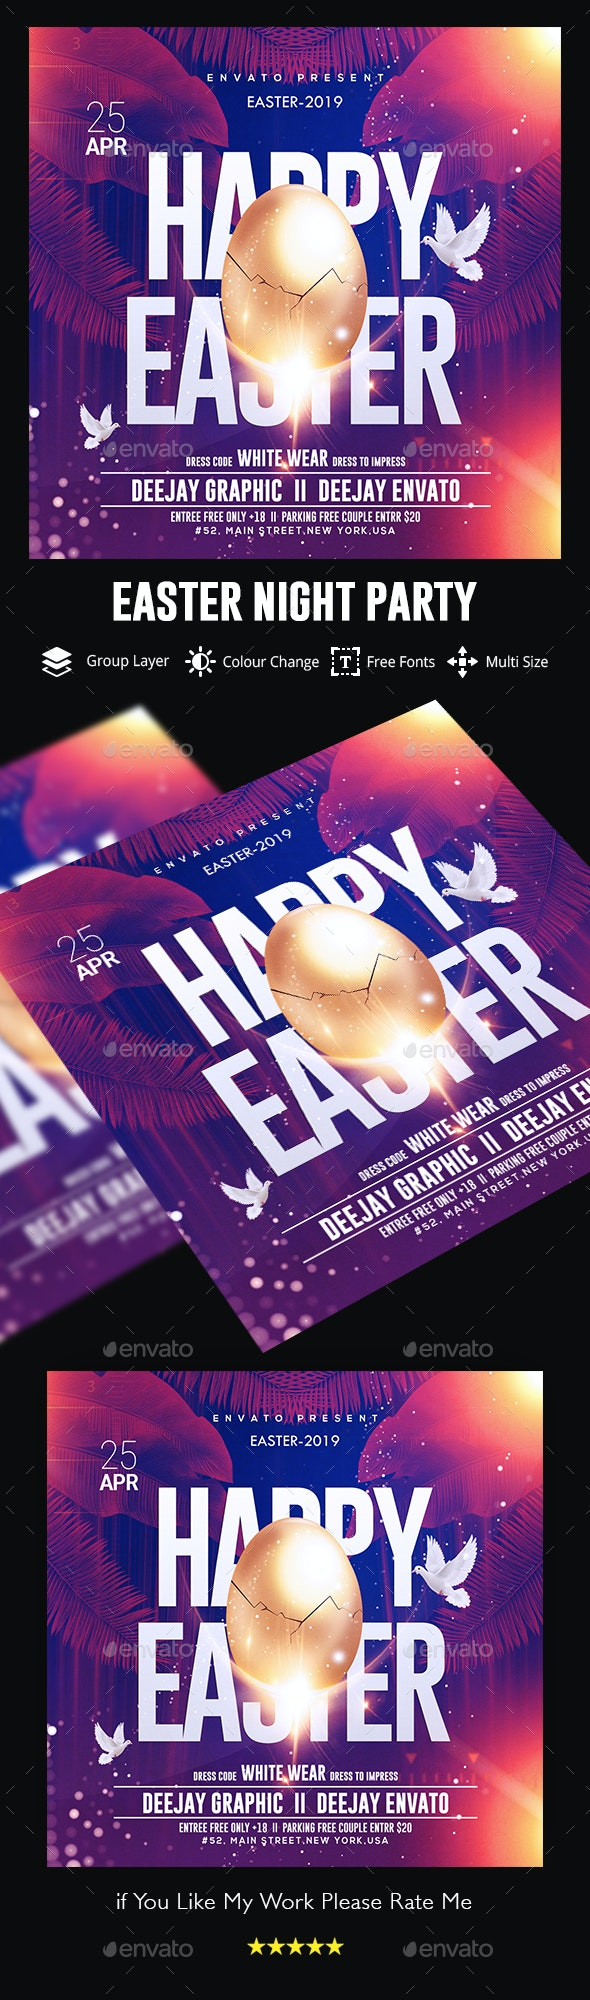 Easter Party Flyer Template - Flyers Print Templates